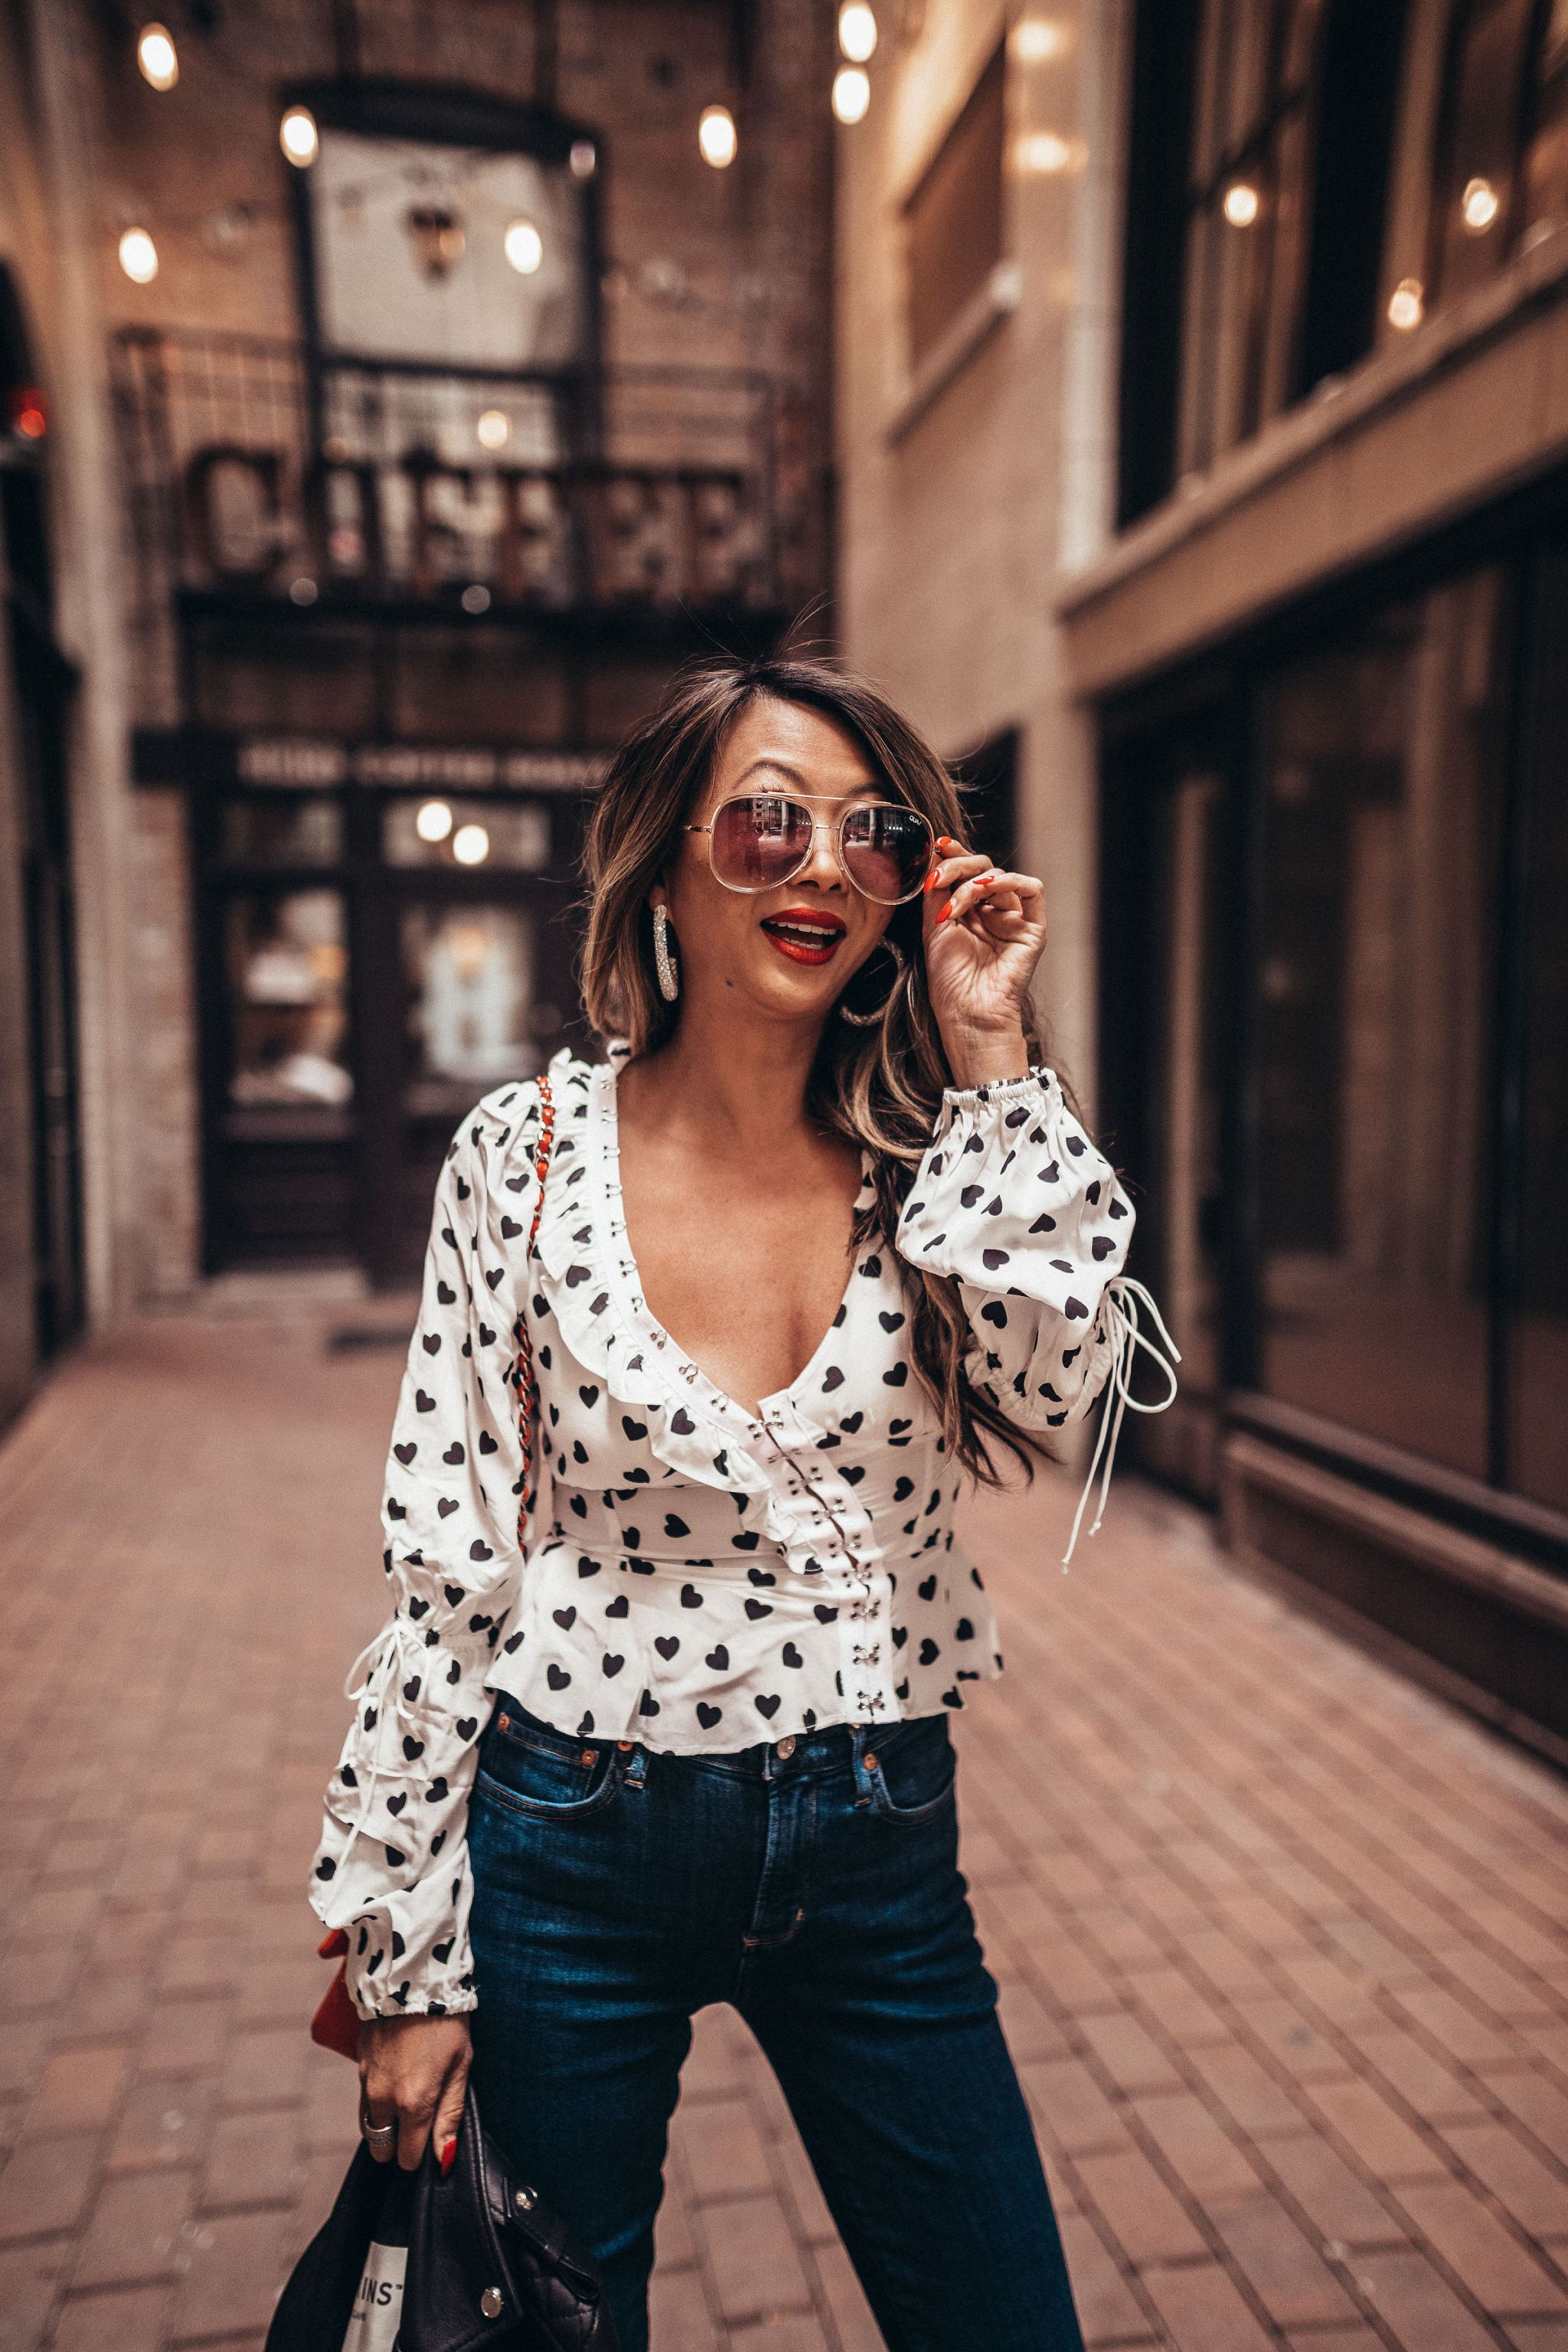 spring essentials from shopbop, for love and lemons top, for love and lemons willow top, outfit ideas, spring outfits, fashion blogger, street style, spring style, Jennifer Worman